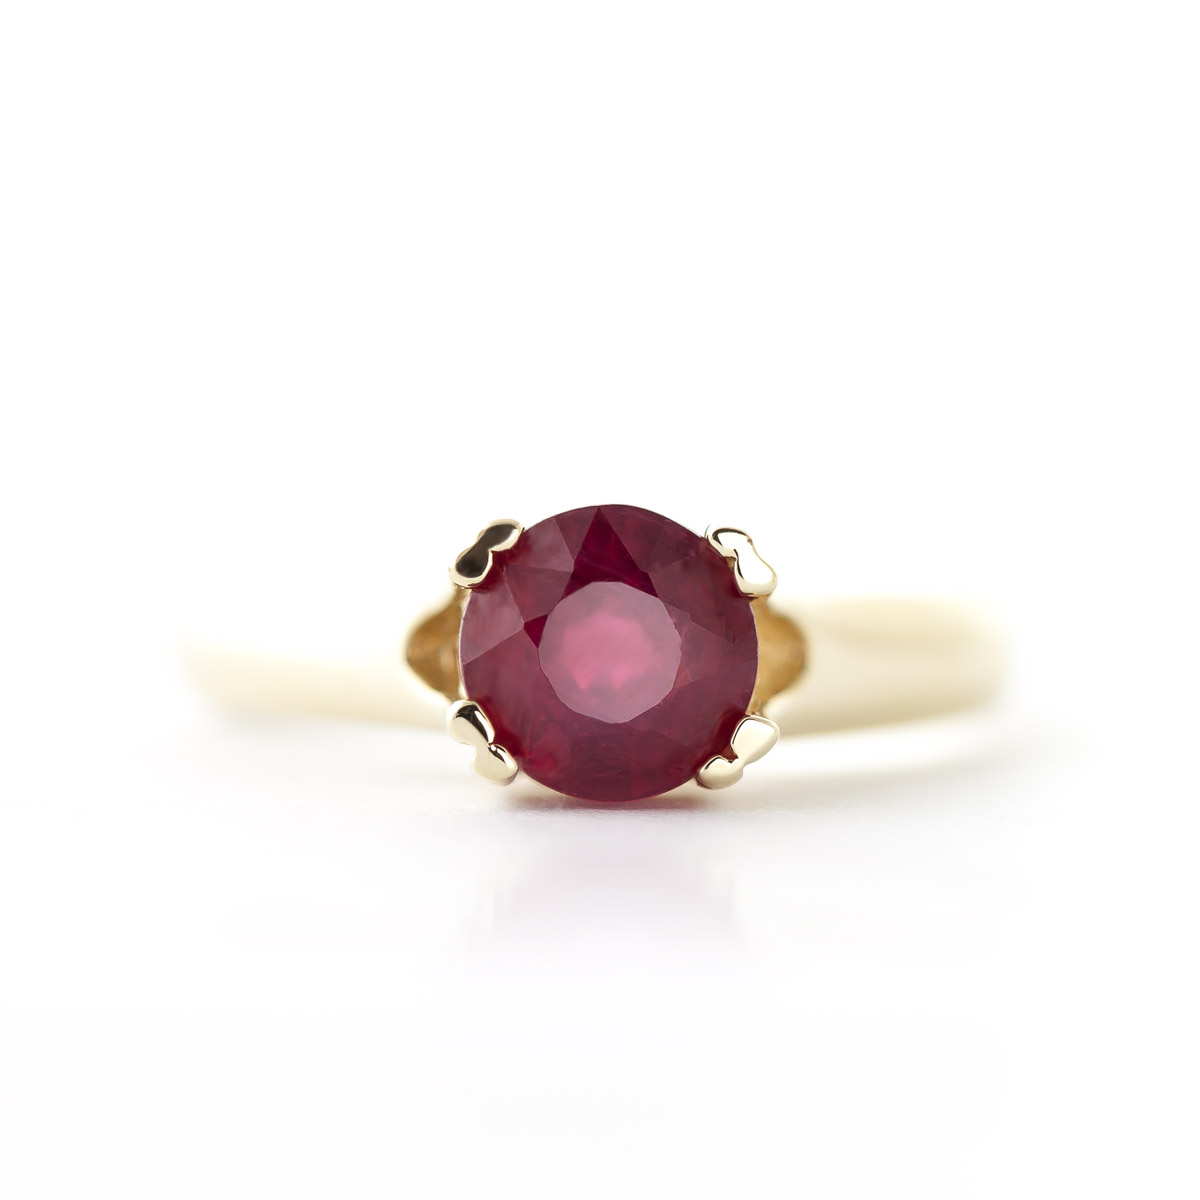 Round Brilliant Cut Ruby Solitaire Ring 1.35ct in 9ct Gold